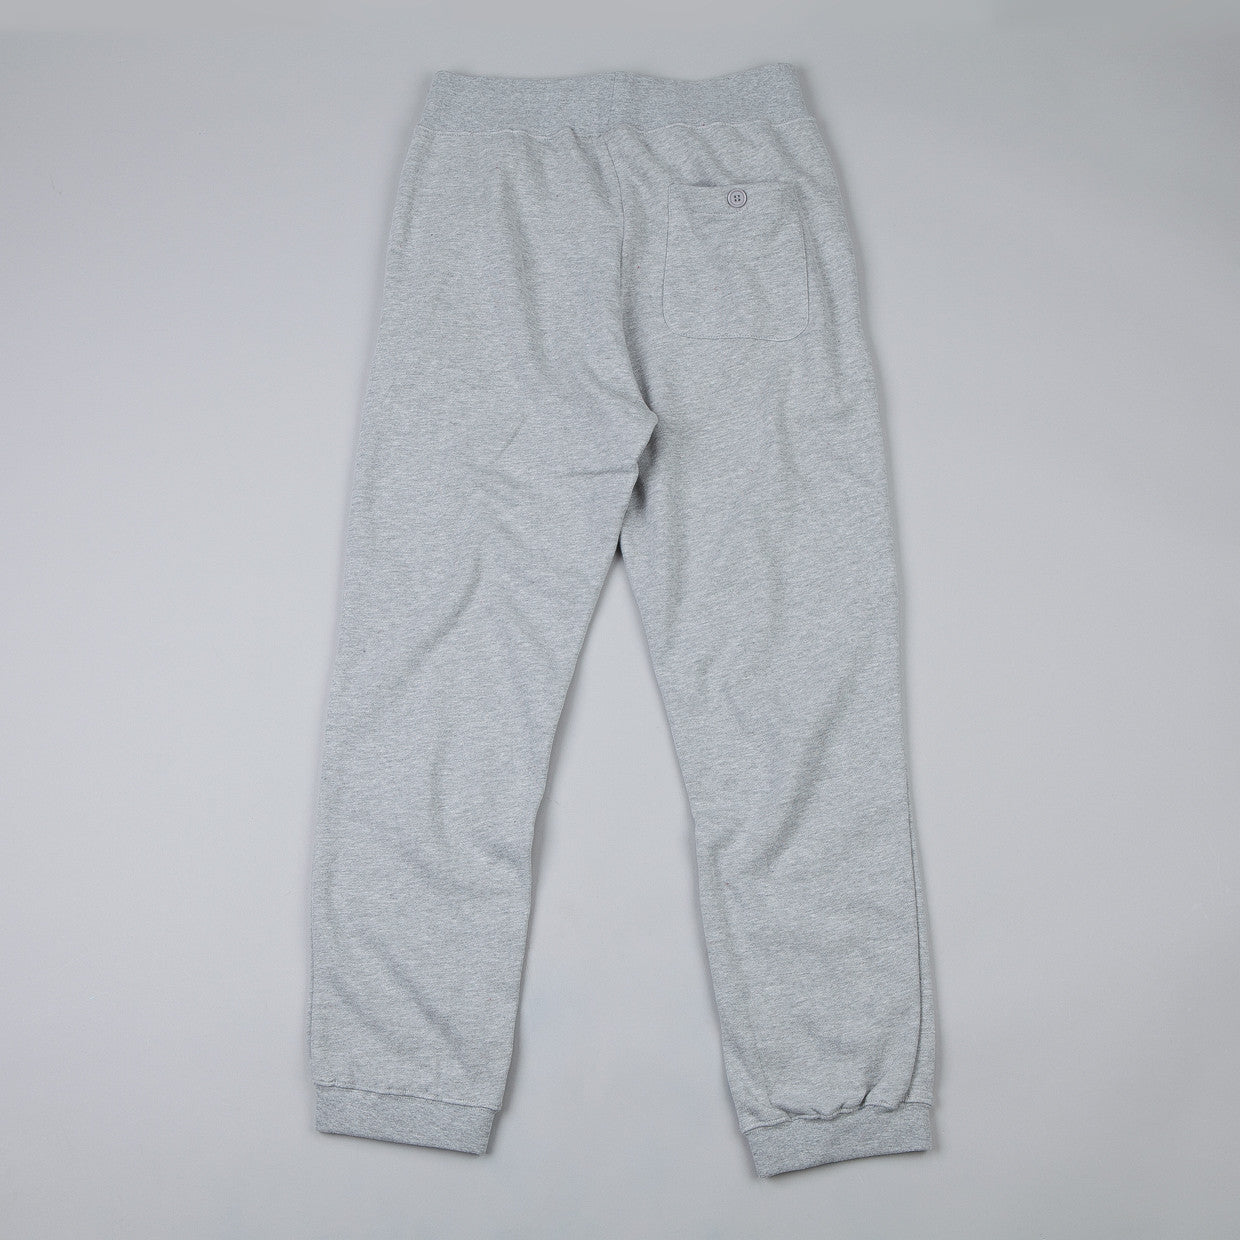 Stussy 8 Ball Sweatpants Grey Heather